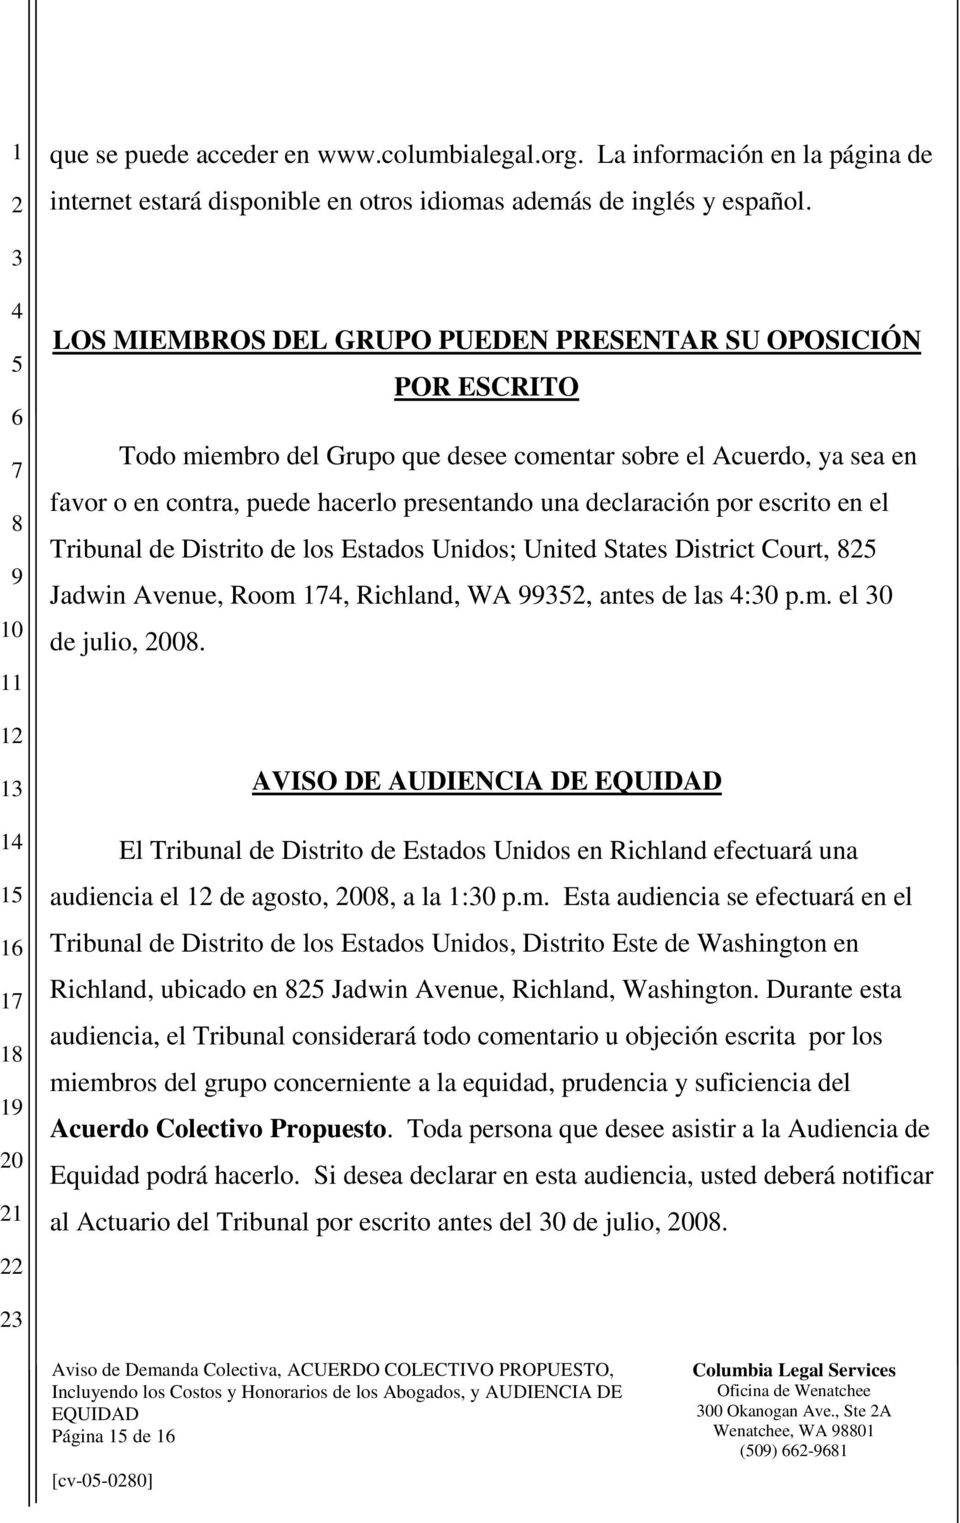 declaración por escrito en el Tribunal de Distrito de los Estados Unidos; United States District Court, Jadwin Avenue, Room, Richland, WA, antes de las :0 p.m. el 0 de julio, 0.